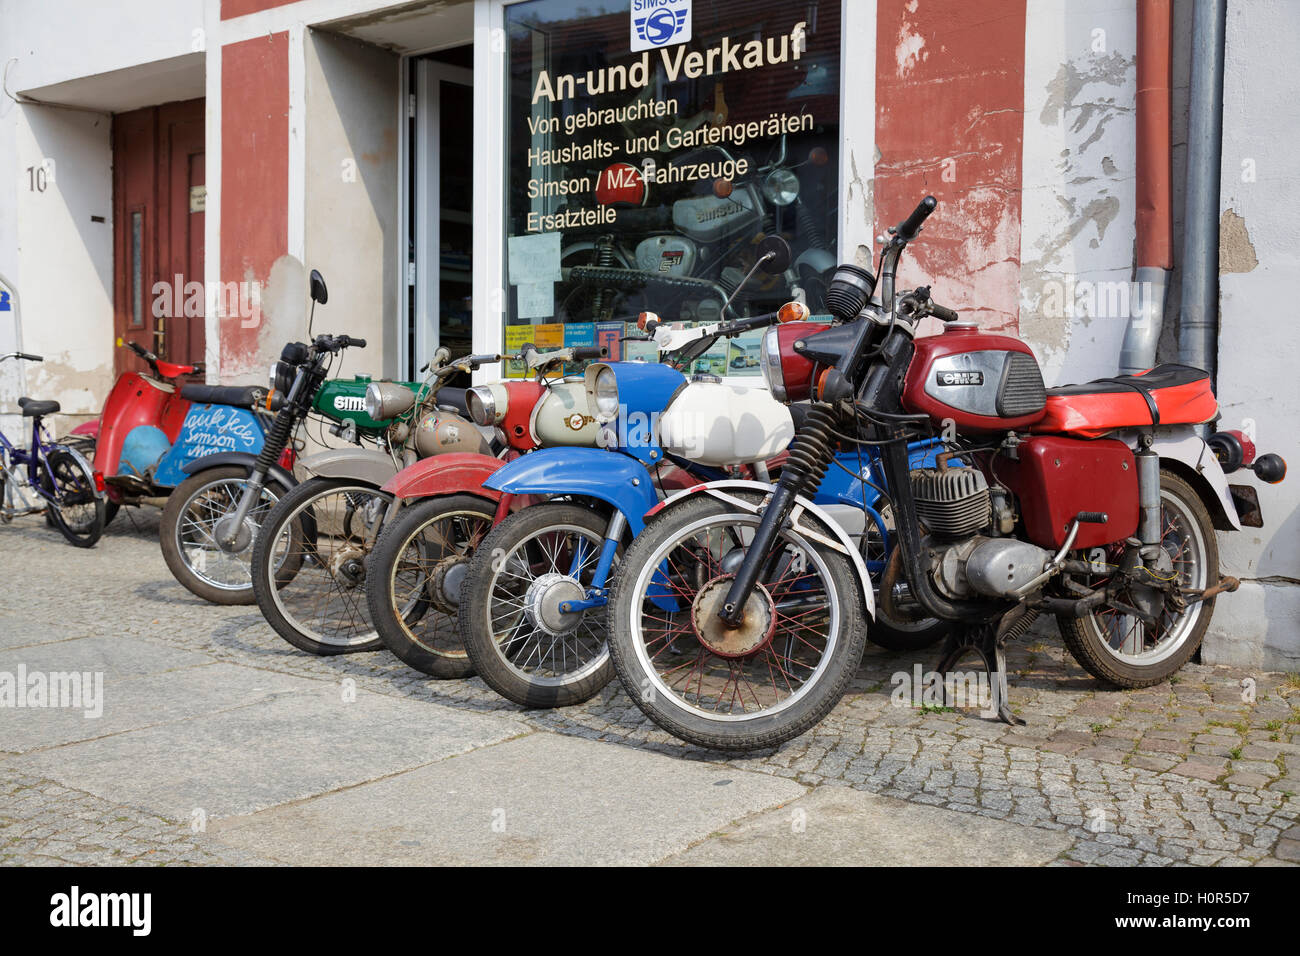 Simson motorbikes for sale outside a shop in Angermünde, Brandenburg, Germany - Stock Image